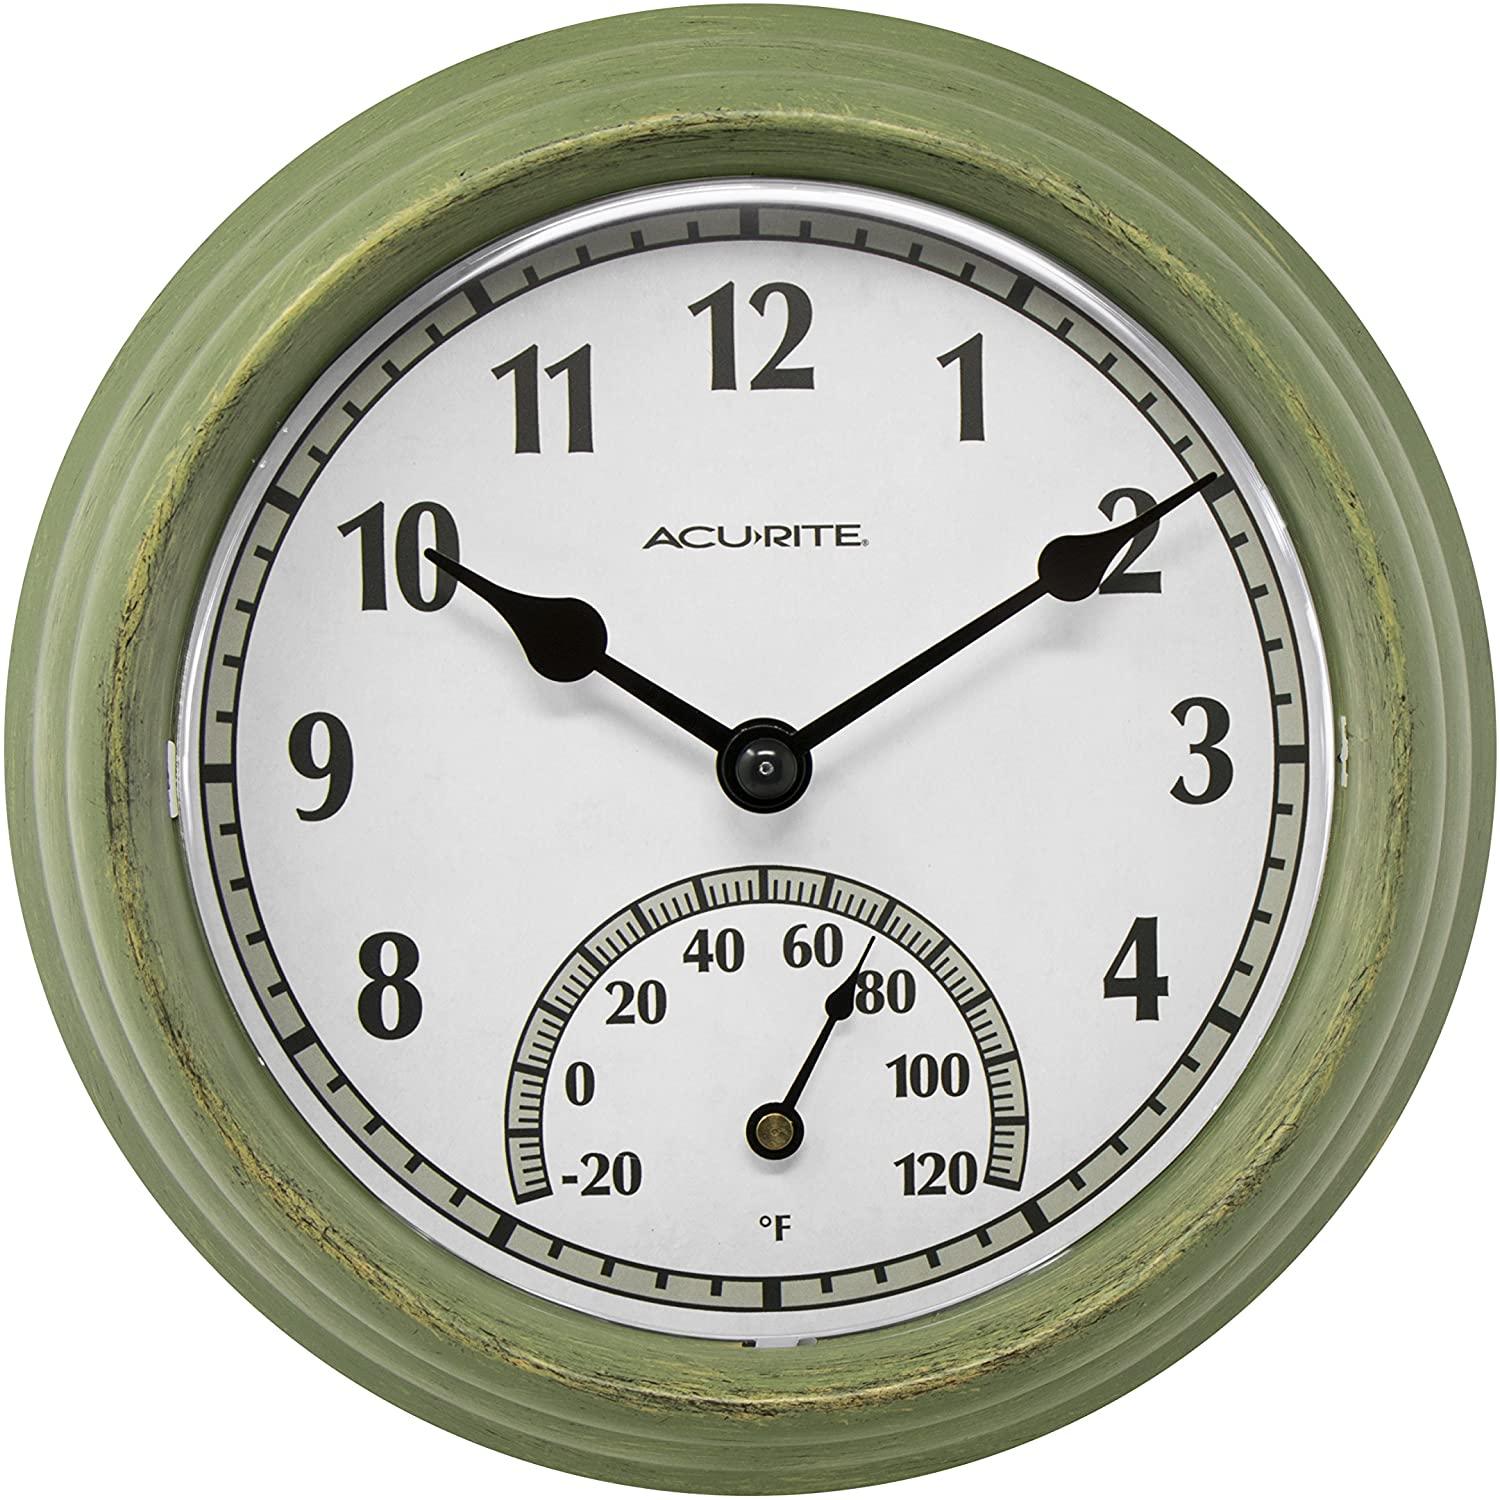 AcuRite 02470 Rustic Green At the price of surprise Outdoor 2021 model Thermometer Clock 8.5